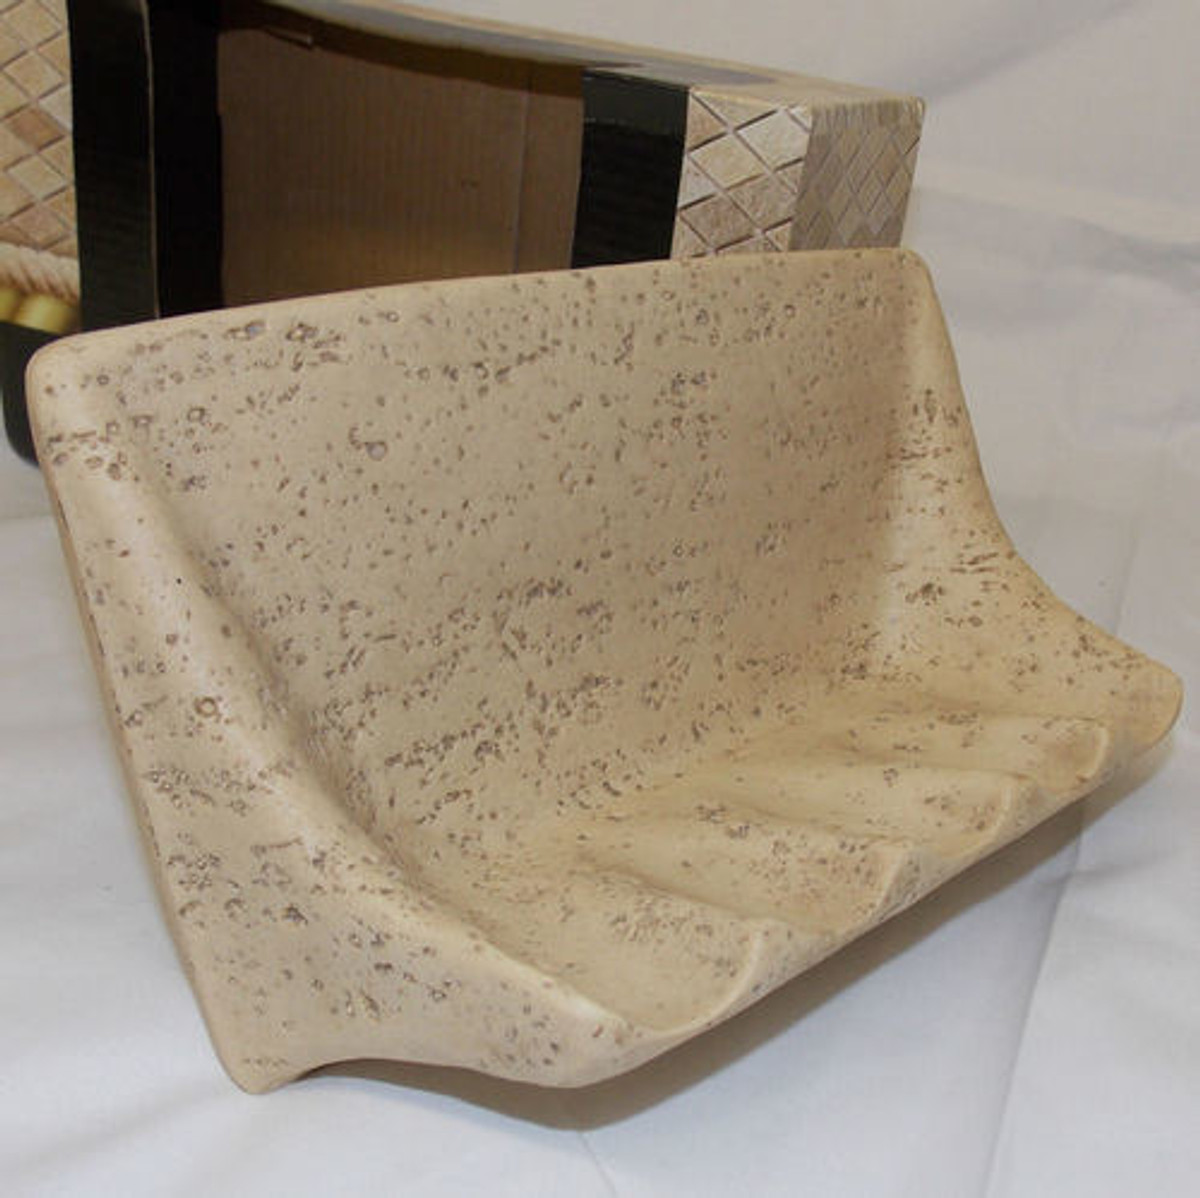 Travertine Soap Dishes